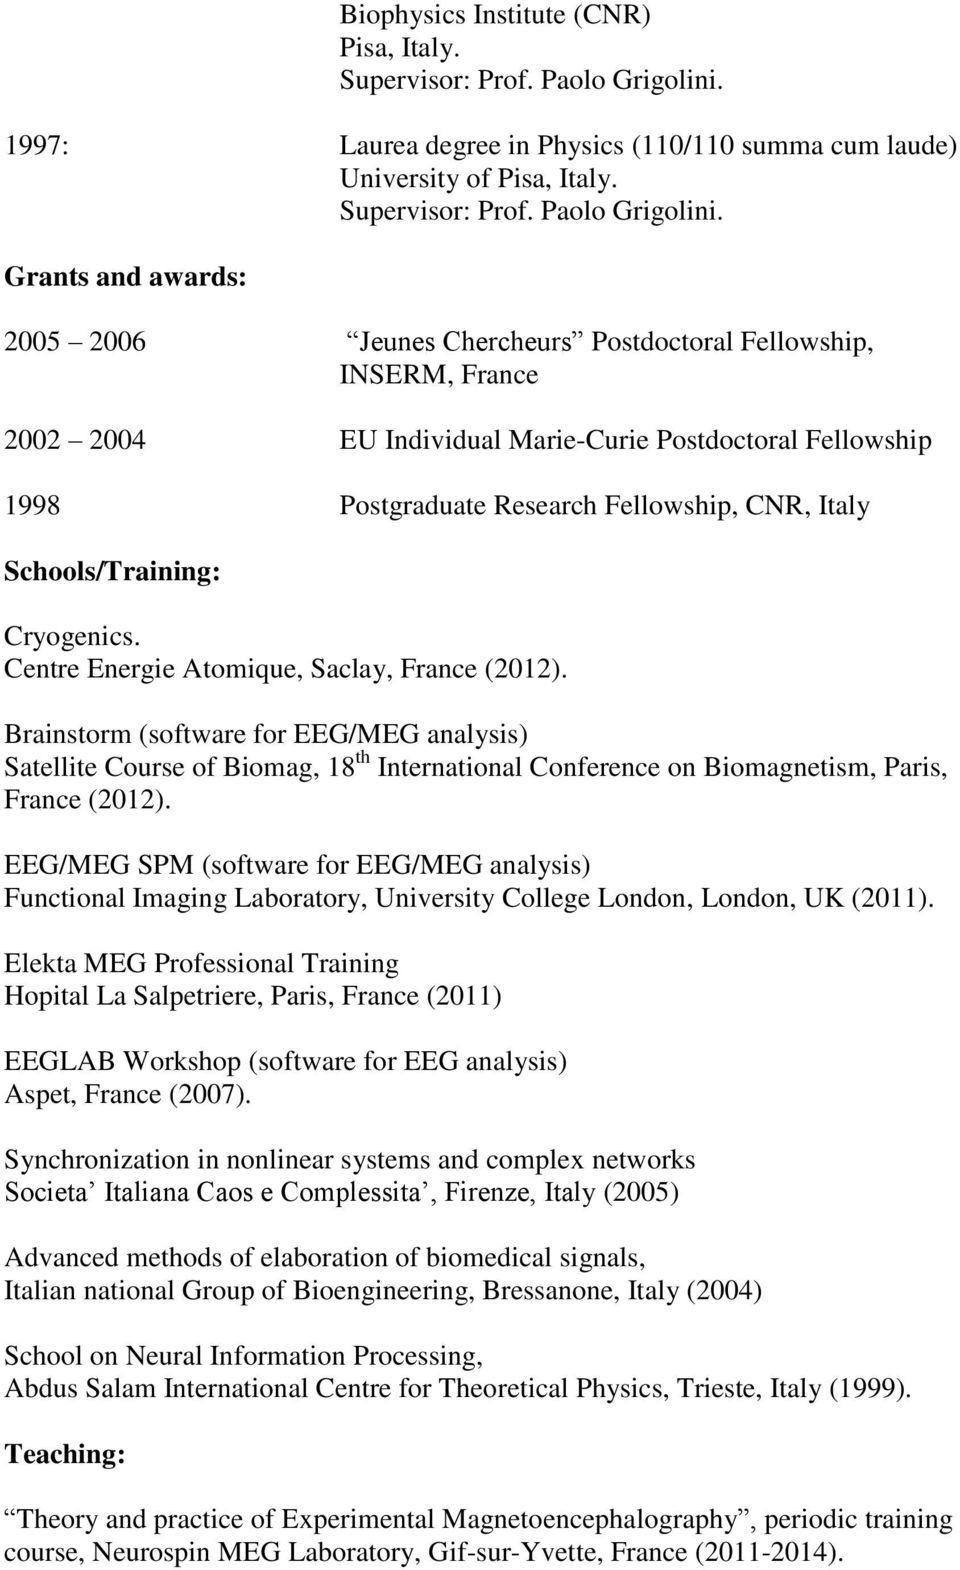 Grants and awards: 2005 2006 Jeunes Chercheurs Postdoctoral Fellowship, INSERM, France 2002 2004 EU Individual Marie-Curie Postdoctoral Fellowship 1998 Postgraduate Research Fellowship, CNR, Italy